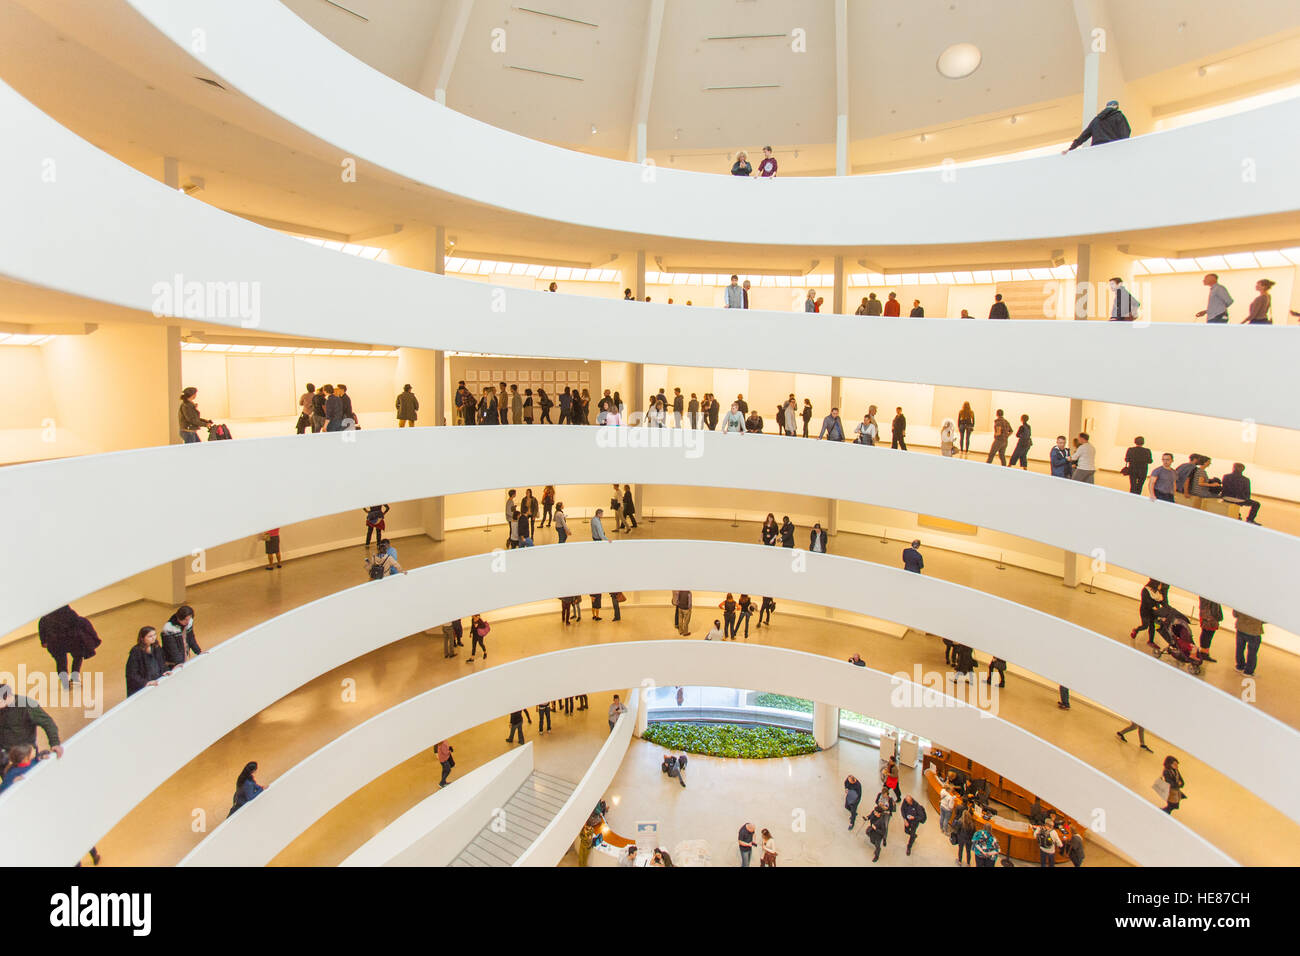 La Rotunda a spirale all'interno del Museo Guggenheim, Fifth Avenue, Manhattan, New York City, Stati Uniti d'America. Immagini Stock